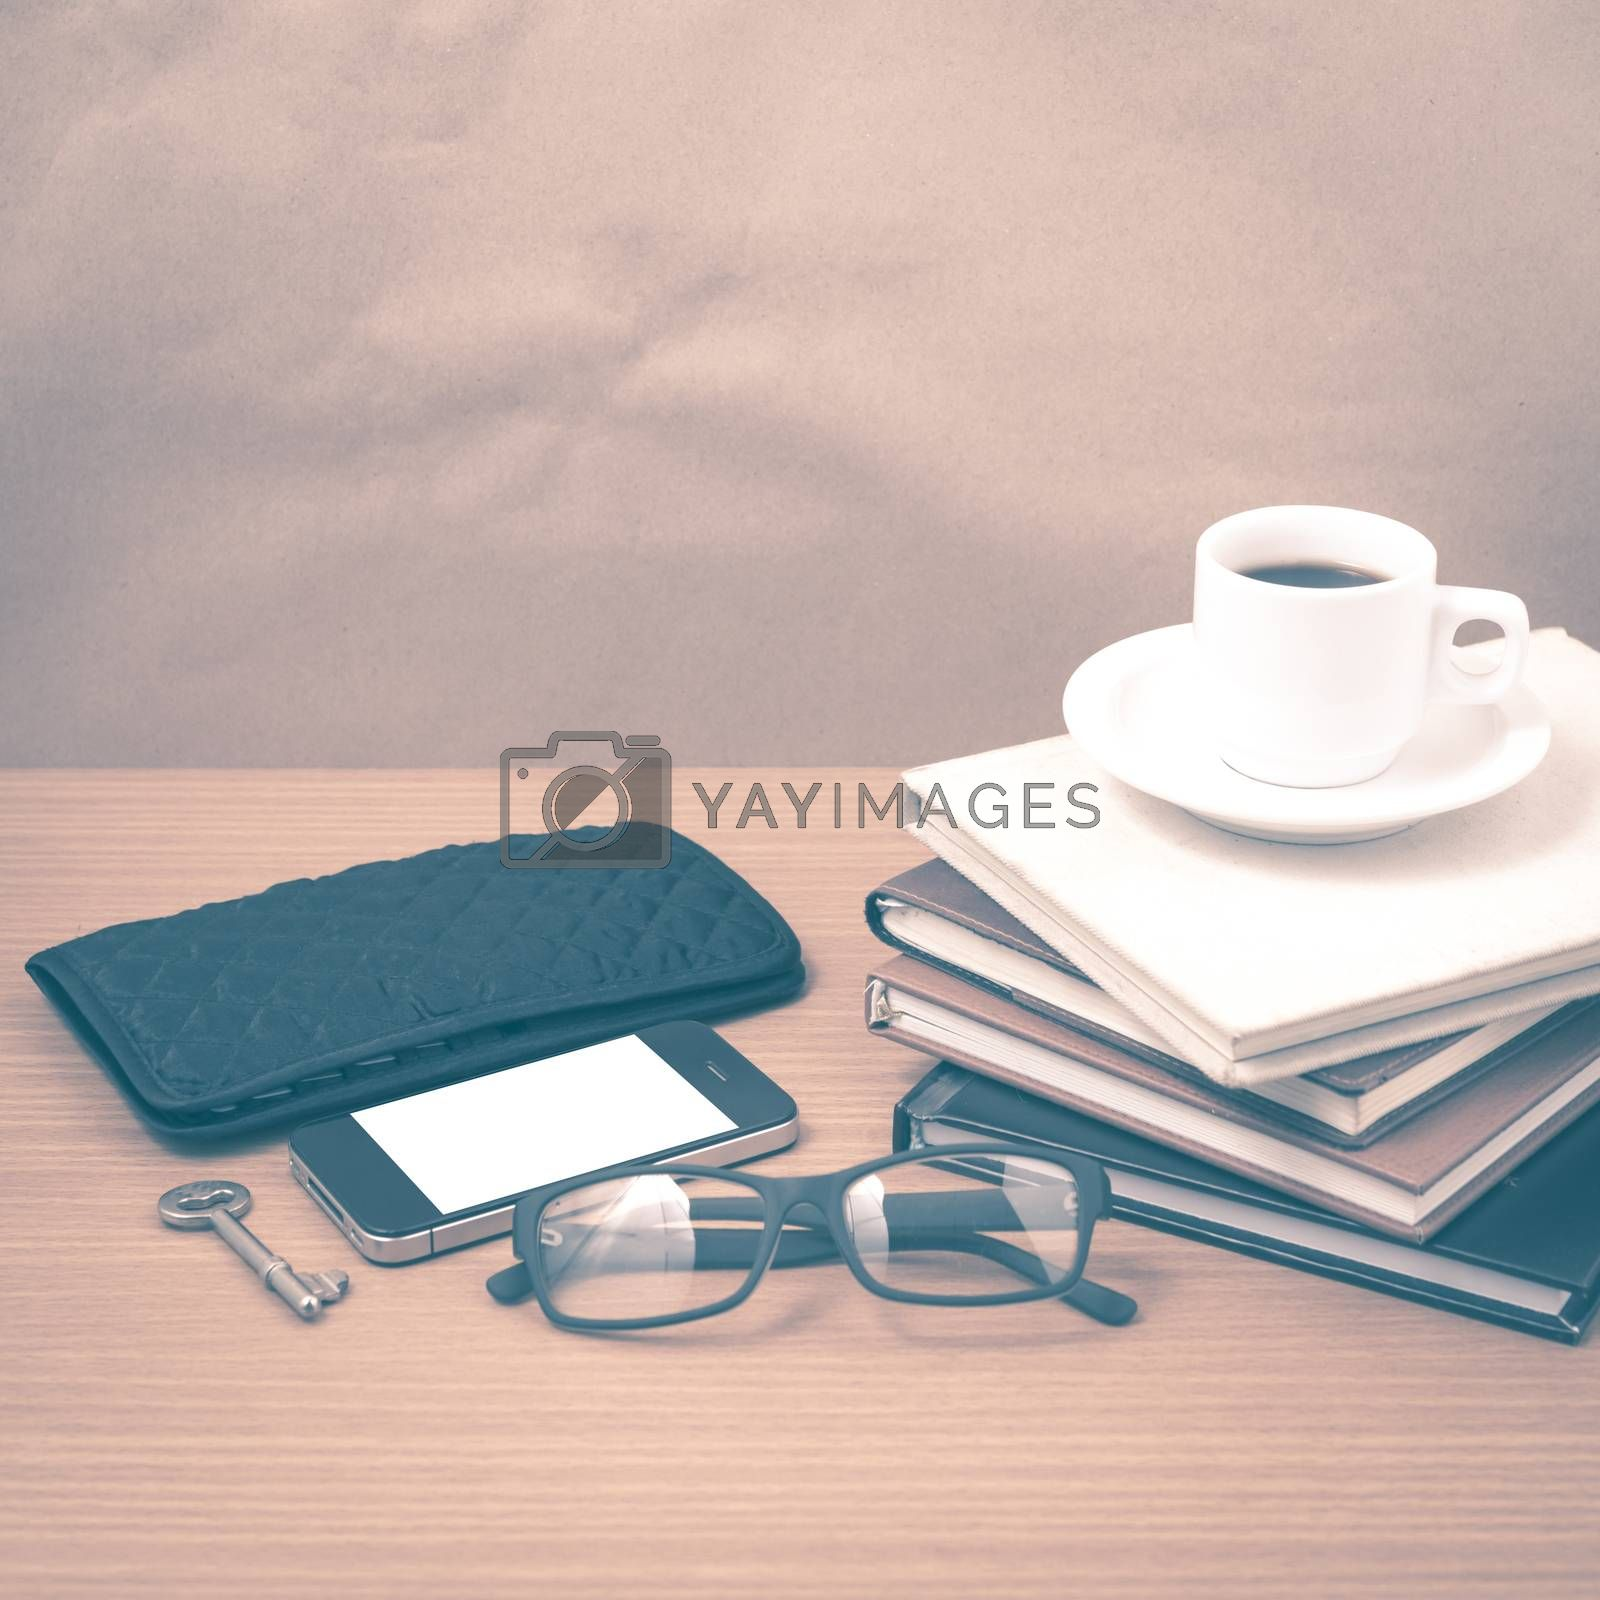 Royalty free image of coffee and phone with stack of book,key,eyeglasses and wallet vi by ammza12